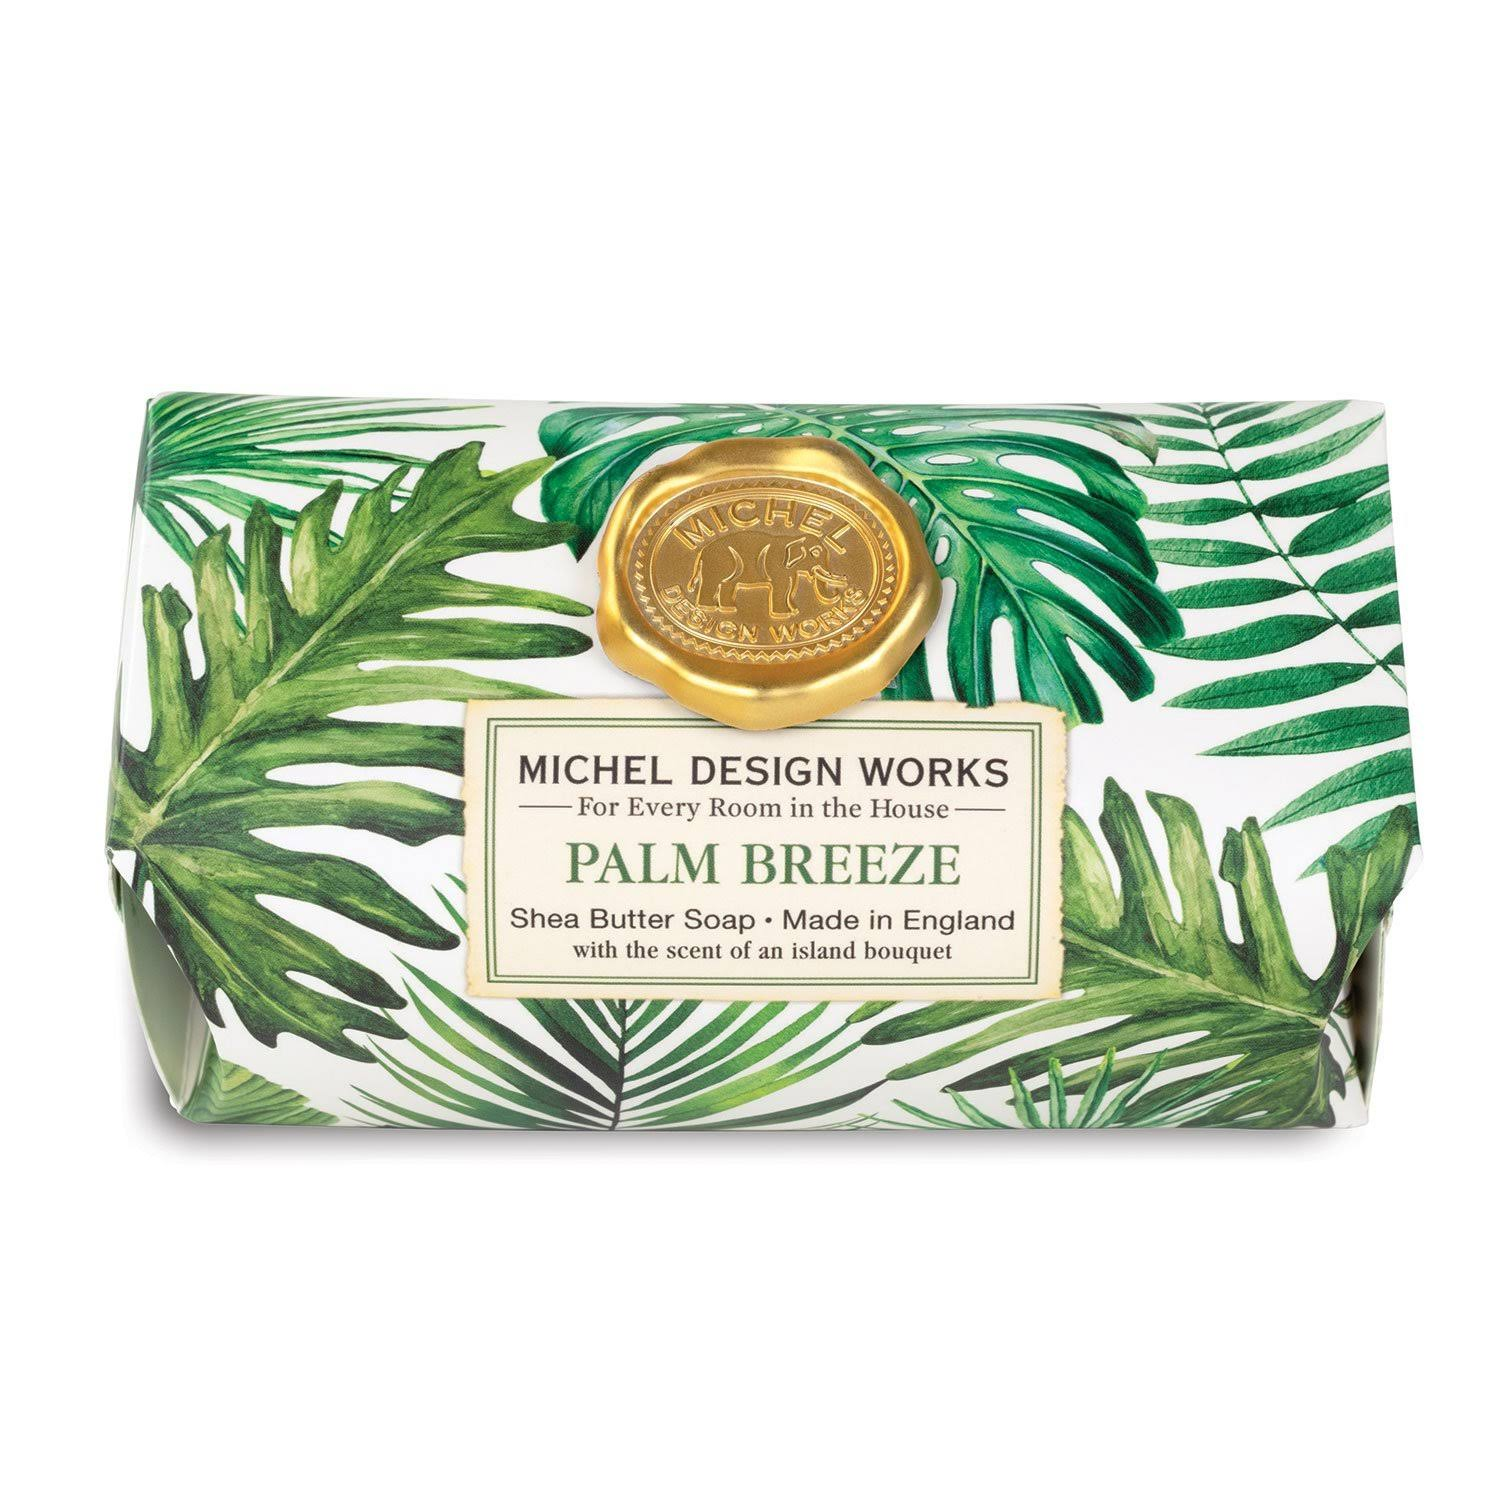 Michel Design Works Large Bath Soap Bar - Palm Breeze | zillymonkey